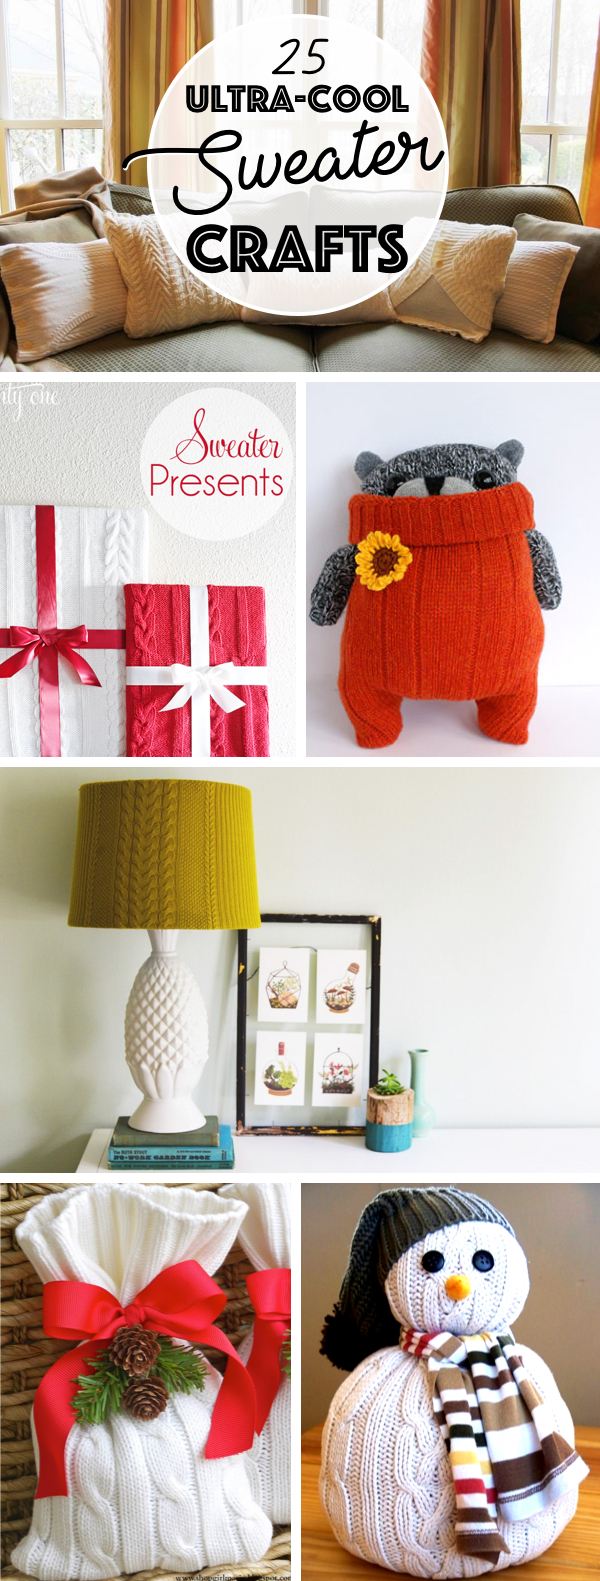 Ultra-Cool Sweater Crafts